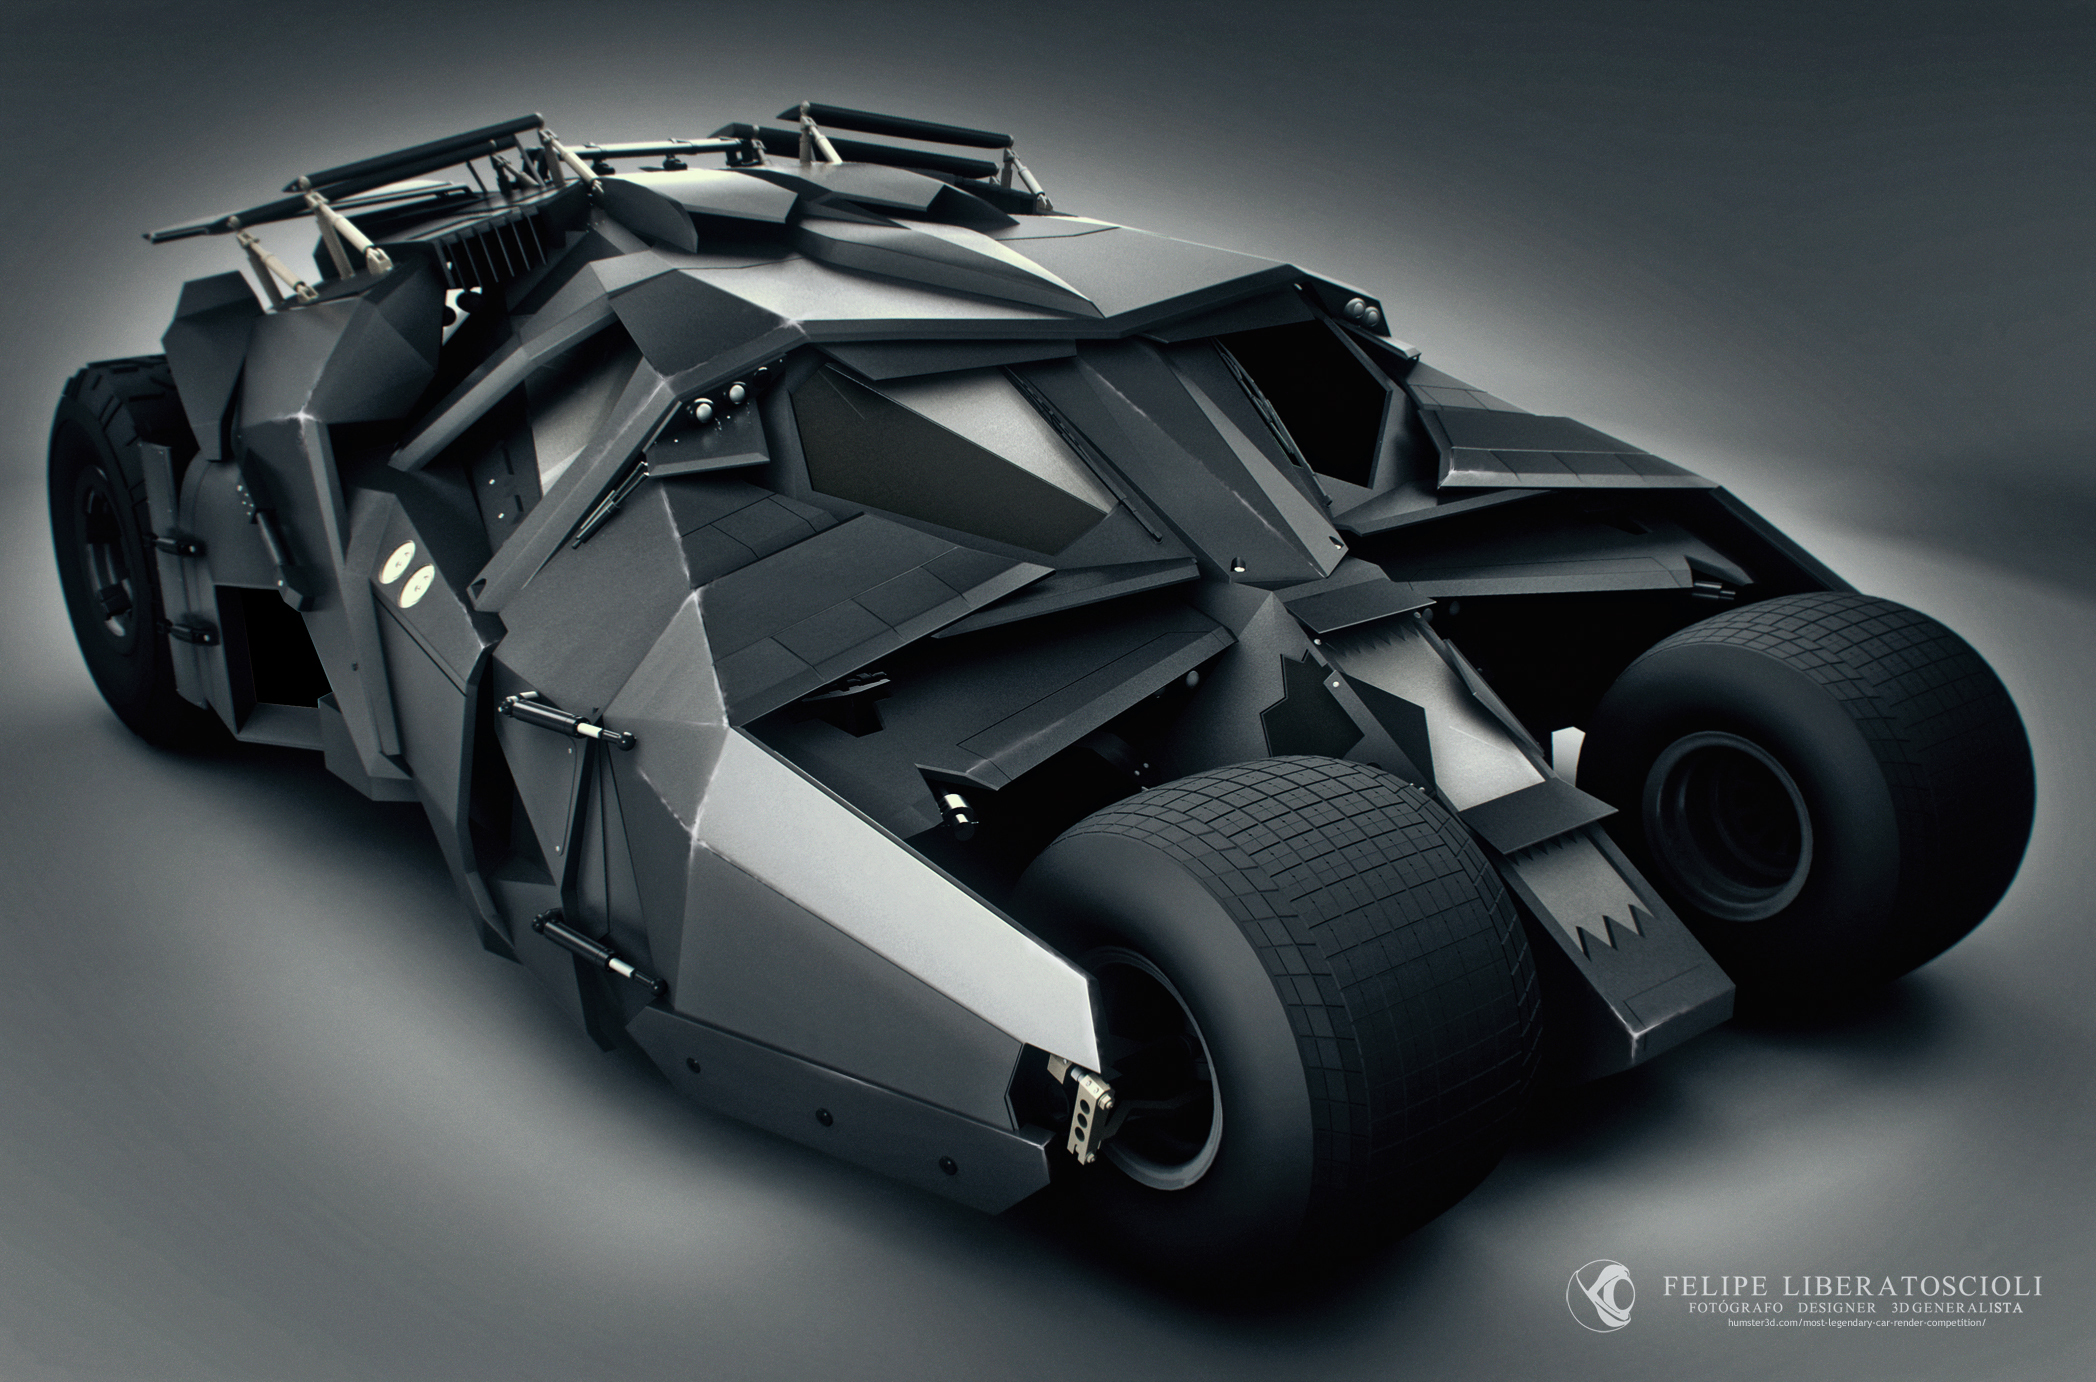 The Tumbler Batmobile